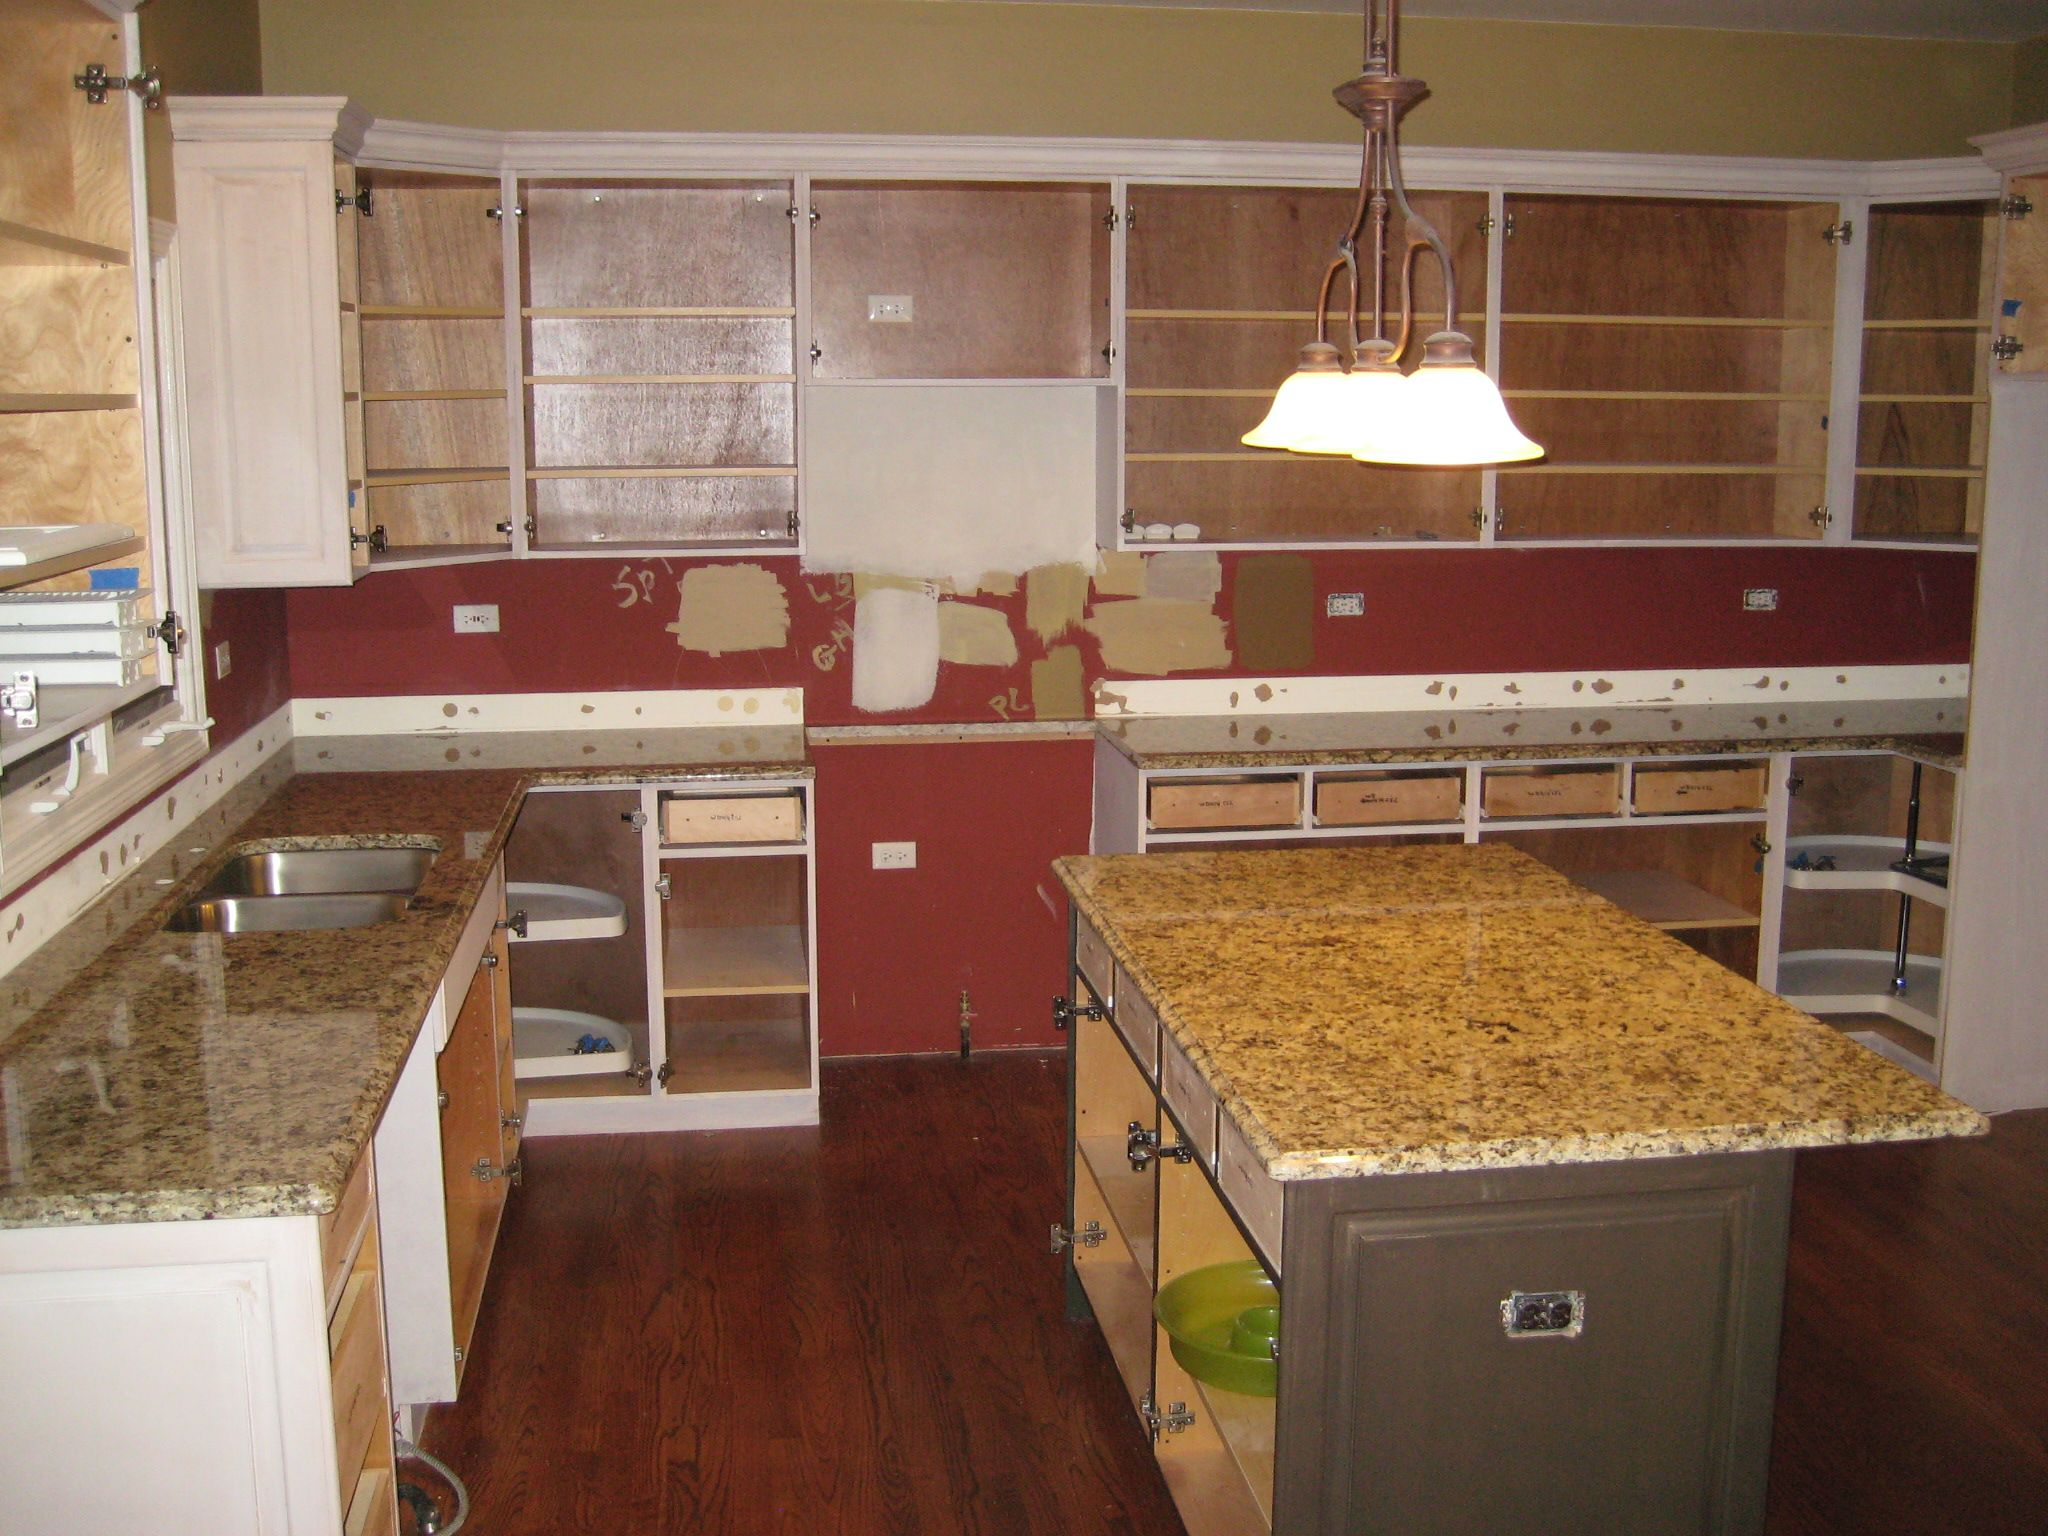 Captivating Granite Color Giallo Napoli $36.00 Per Sf Installed Fabricated And  Installed By Art Granite Countertops